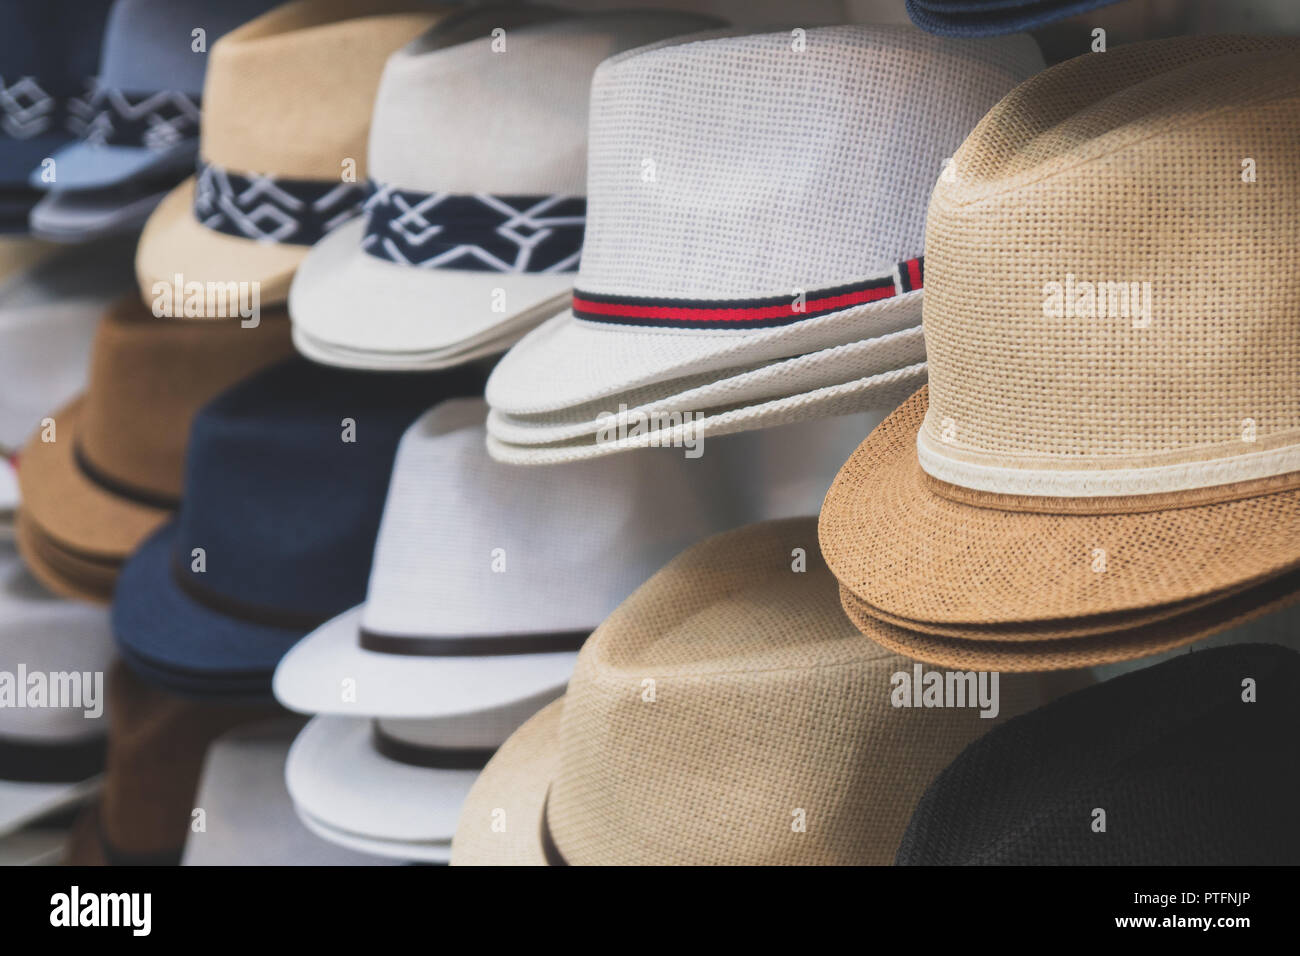 04158cec993ef2 Variety of hats for sale in the market Stock Photo: 221622430 - Alamy